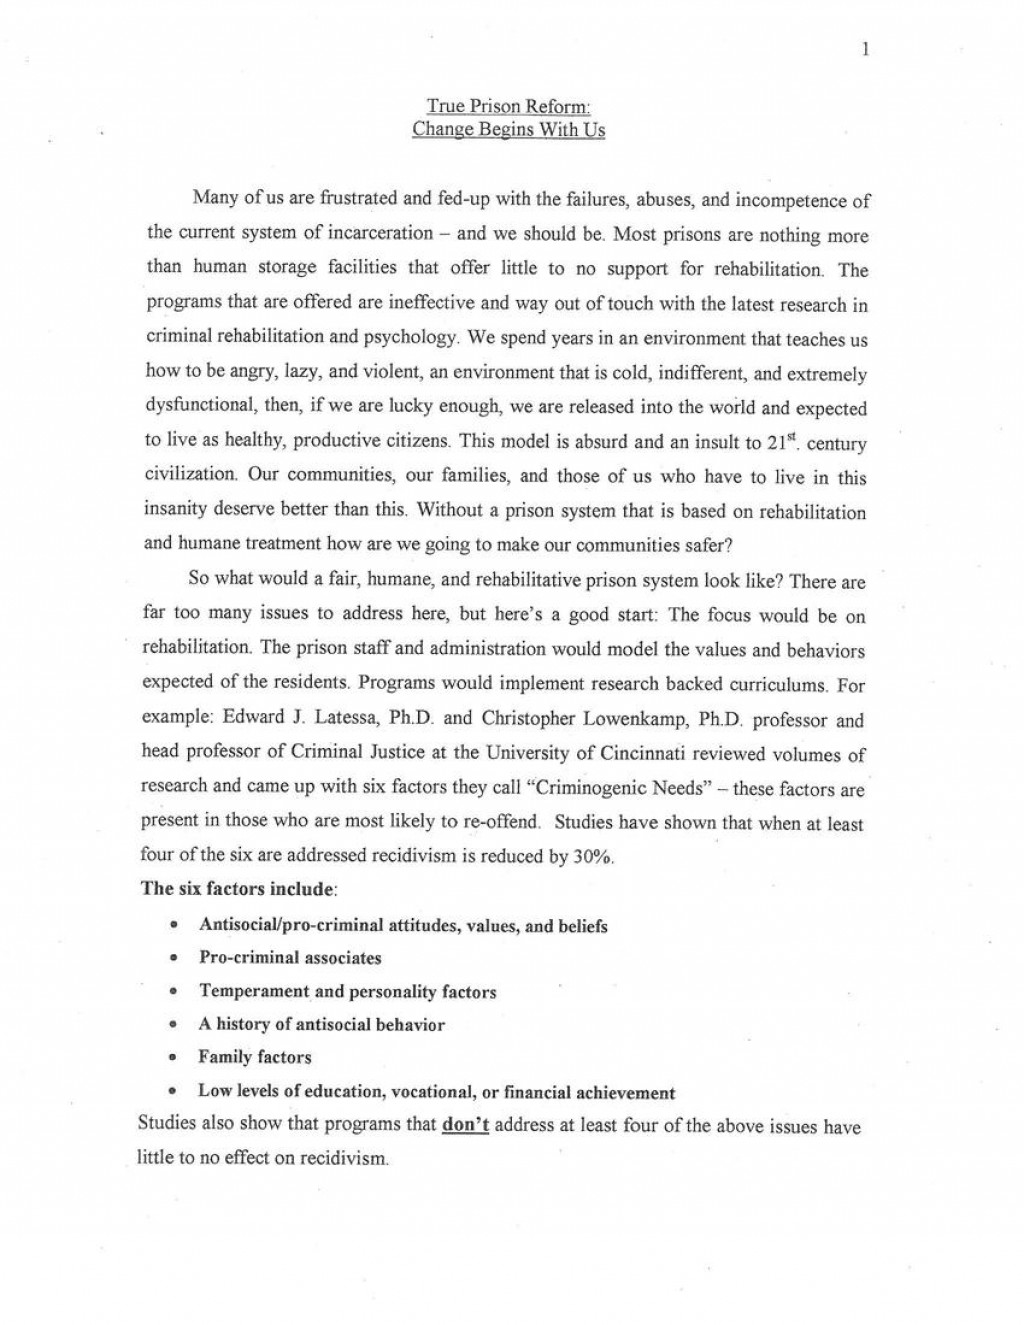 005 Doc6217 Page Essay Example Striking Profile Examples On An Event Writing A Person Large